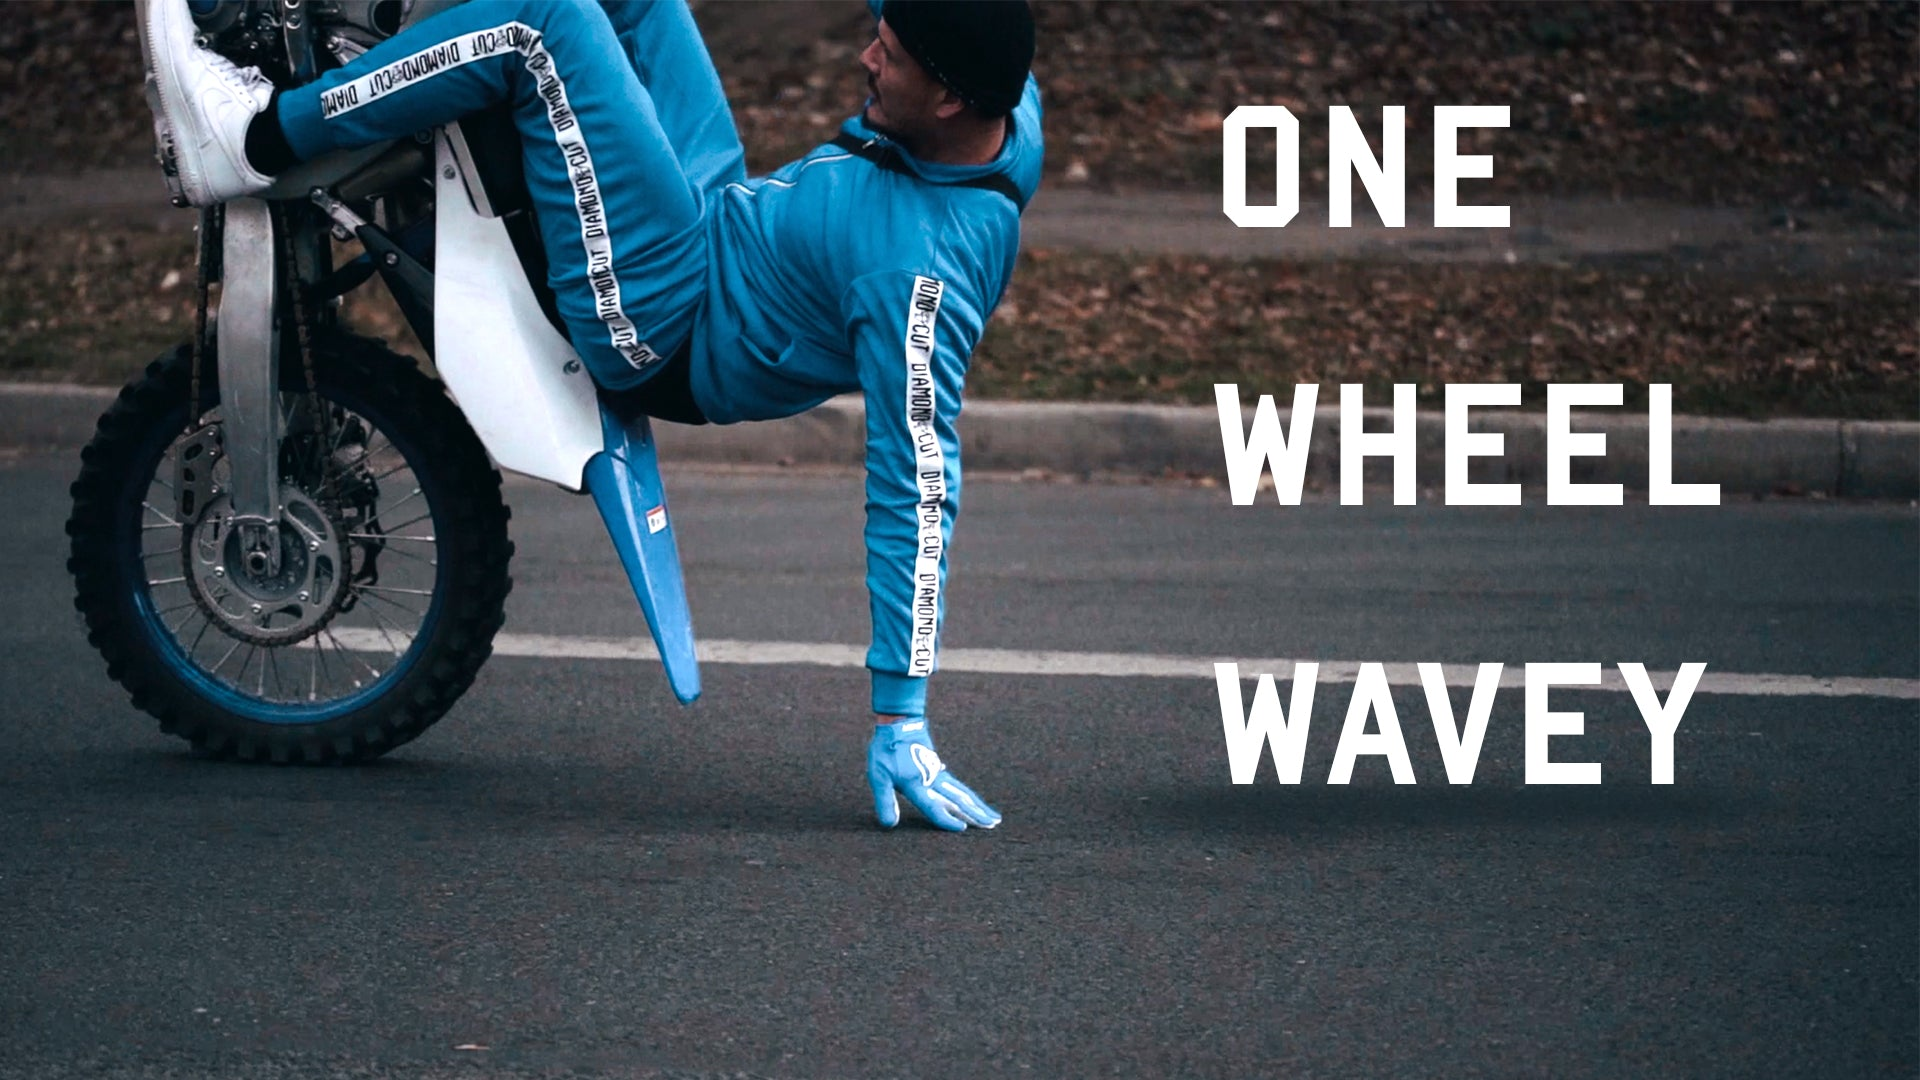 INSIDE THE LIFE - ONEWHEELWAVEY by COLLECTIVE BIKES